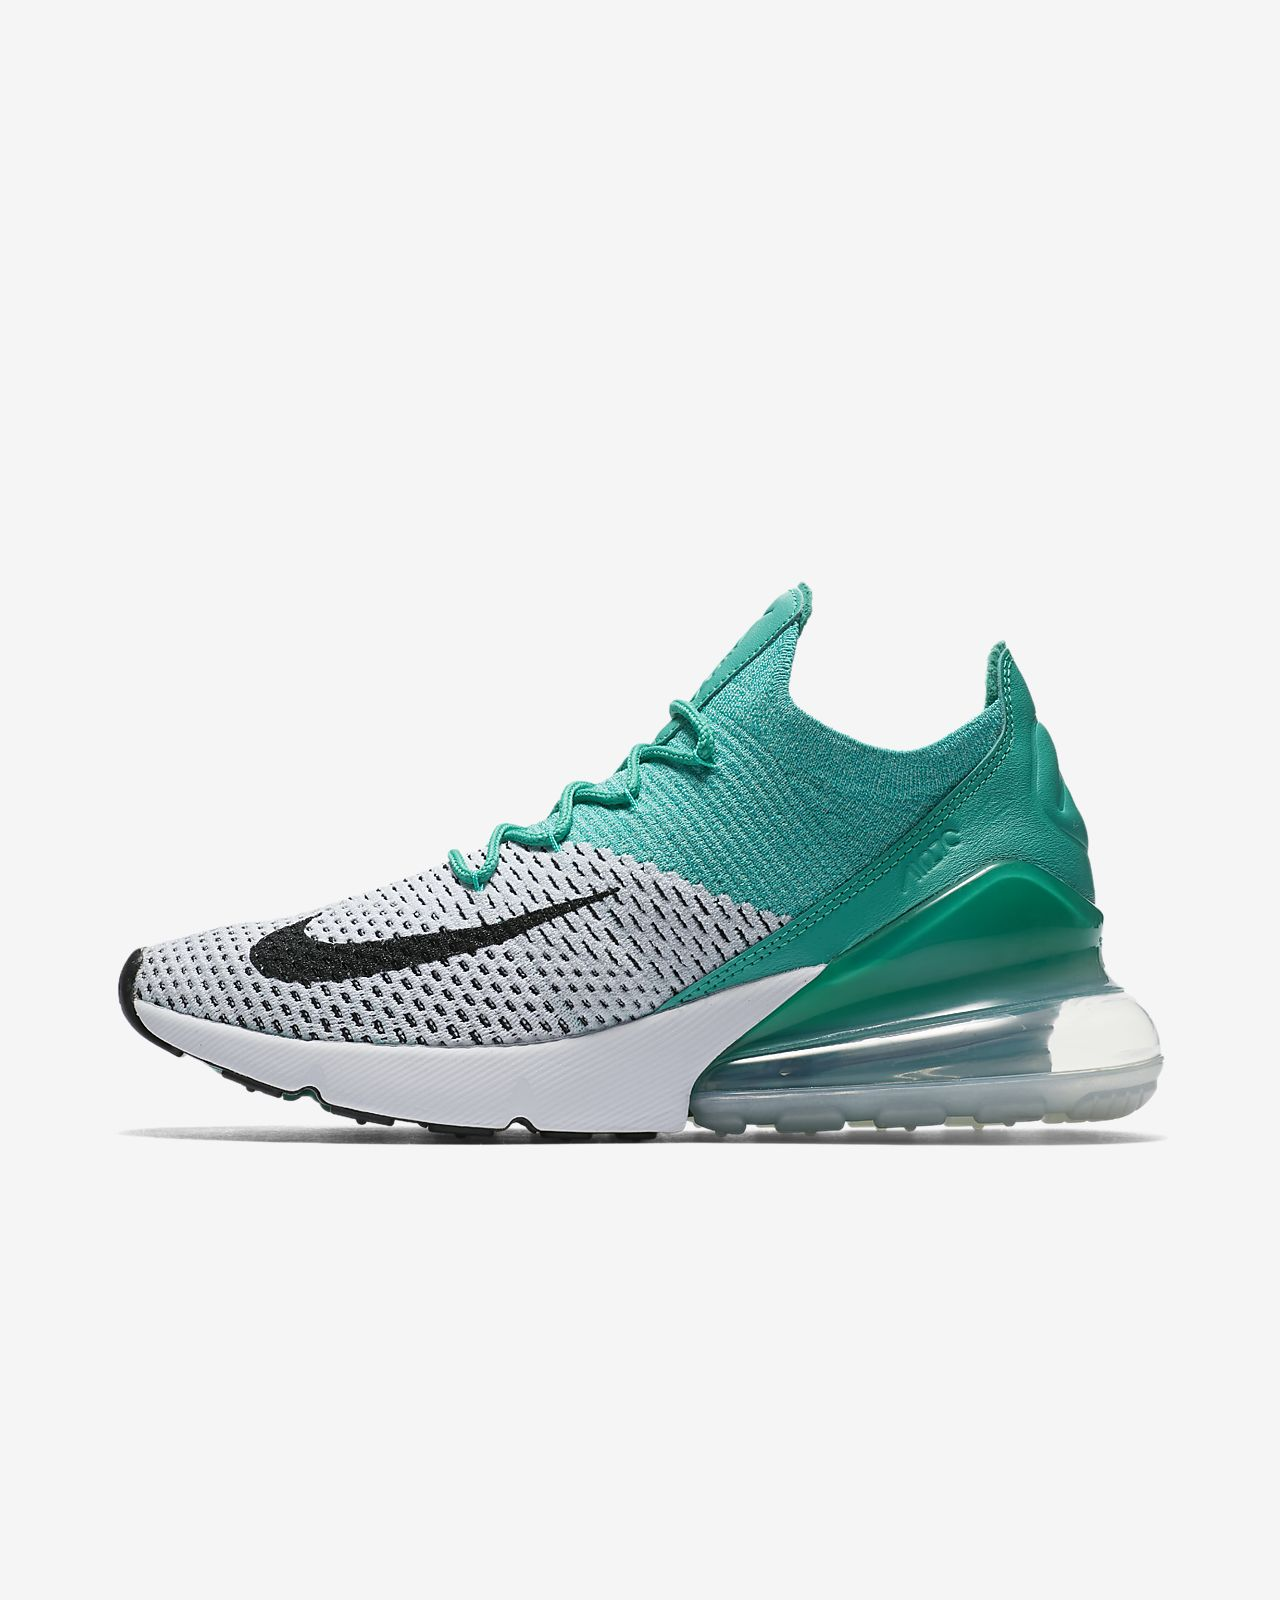 sports shoes 39167 7fce1 Calzadopara mujer Nike Air Max 270 Flyknit